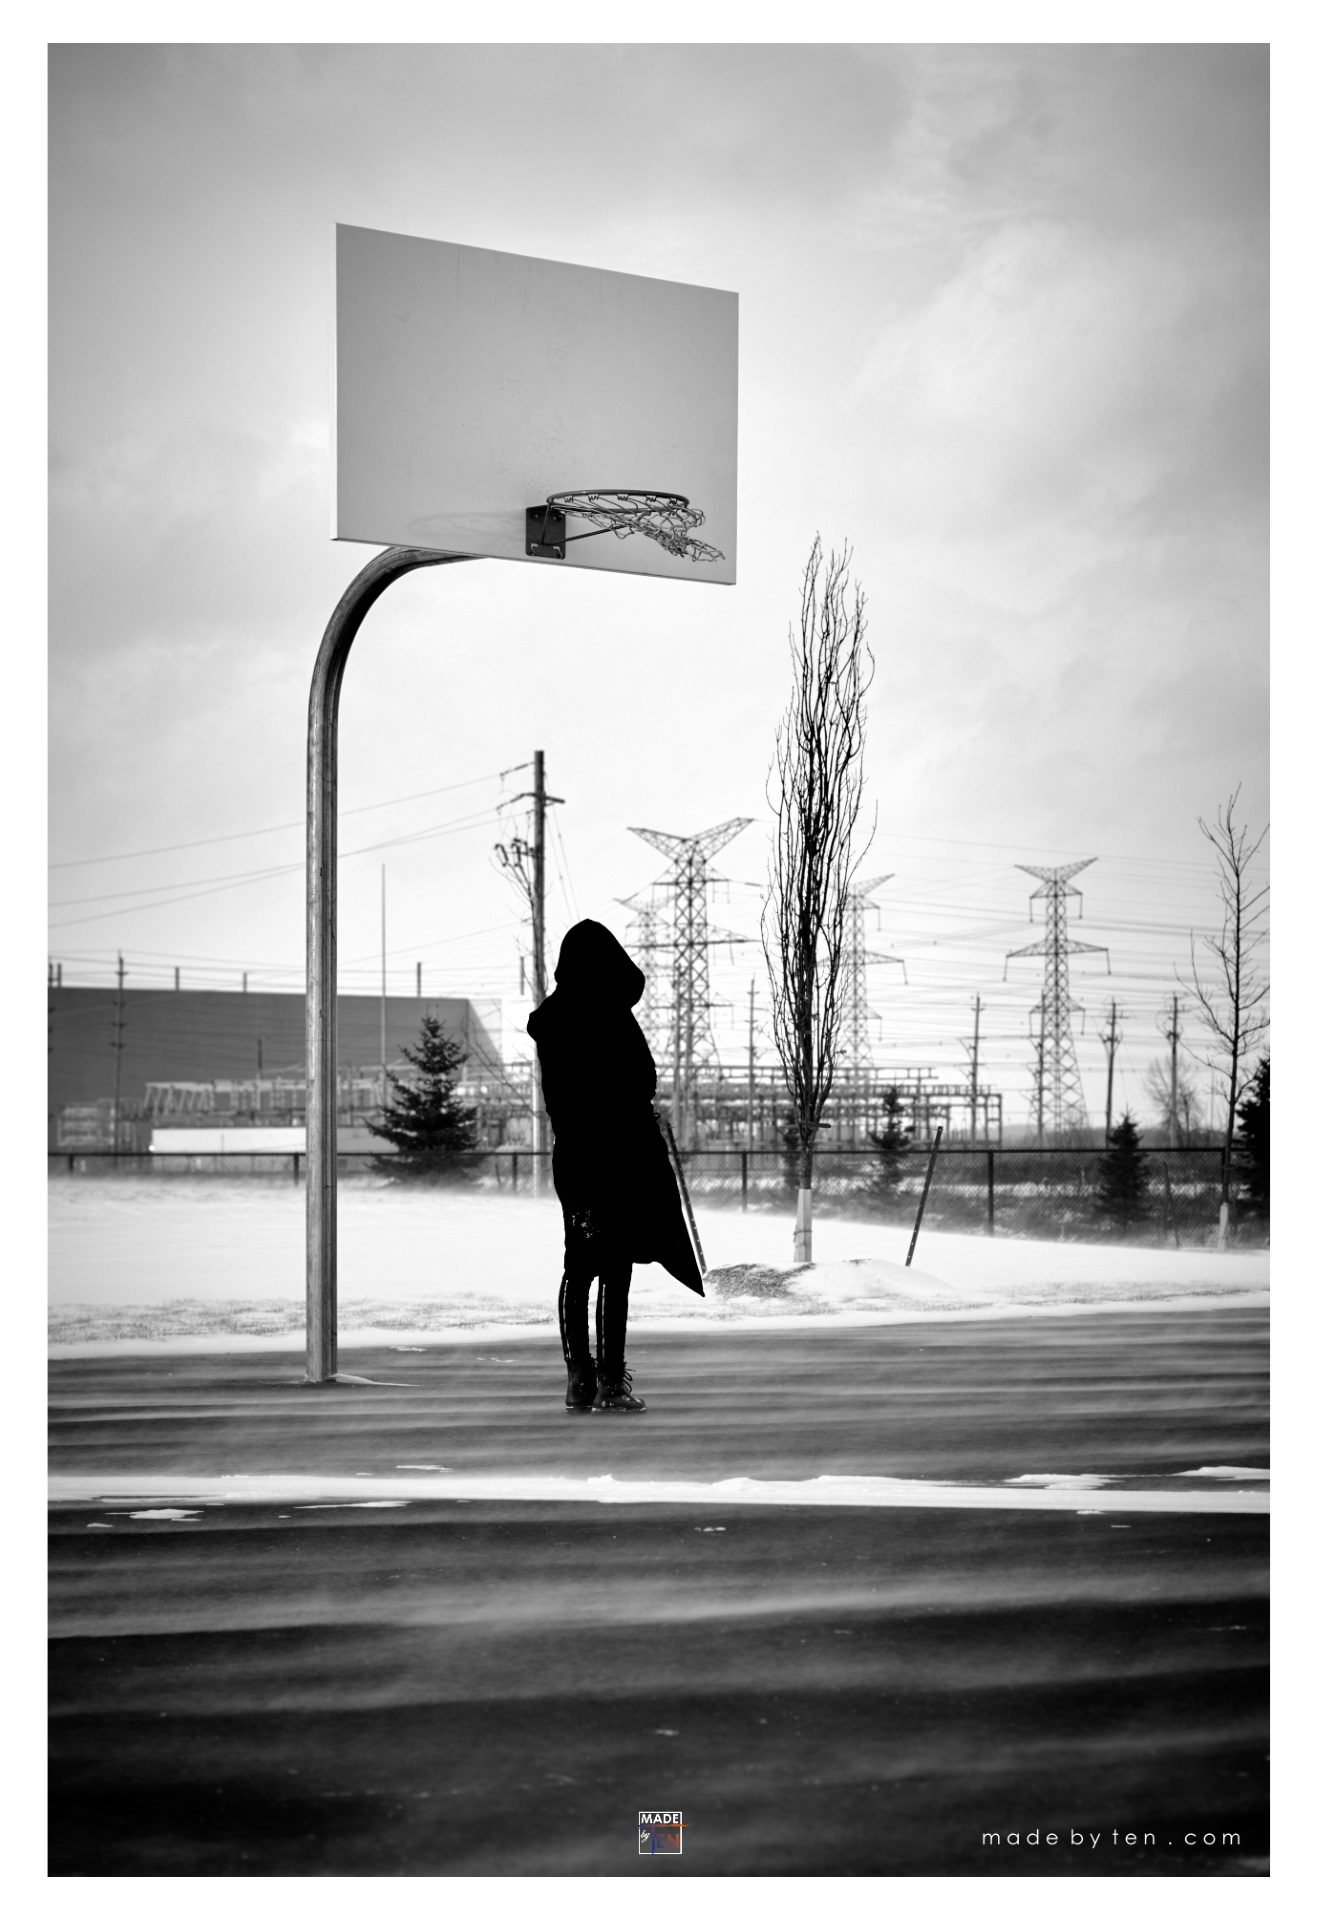 Made-by-Ten-Modern-Creative-Fine-Art-Portrait-Photography-GTA-Women-Toronto-Winter-Cold-Black-and-White-1